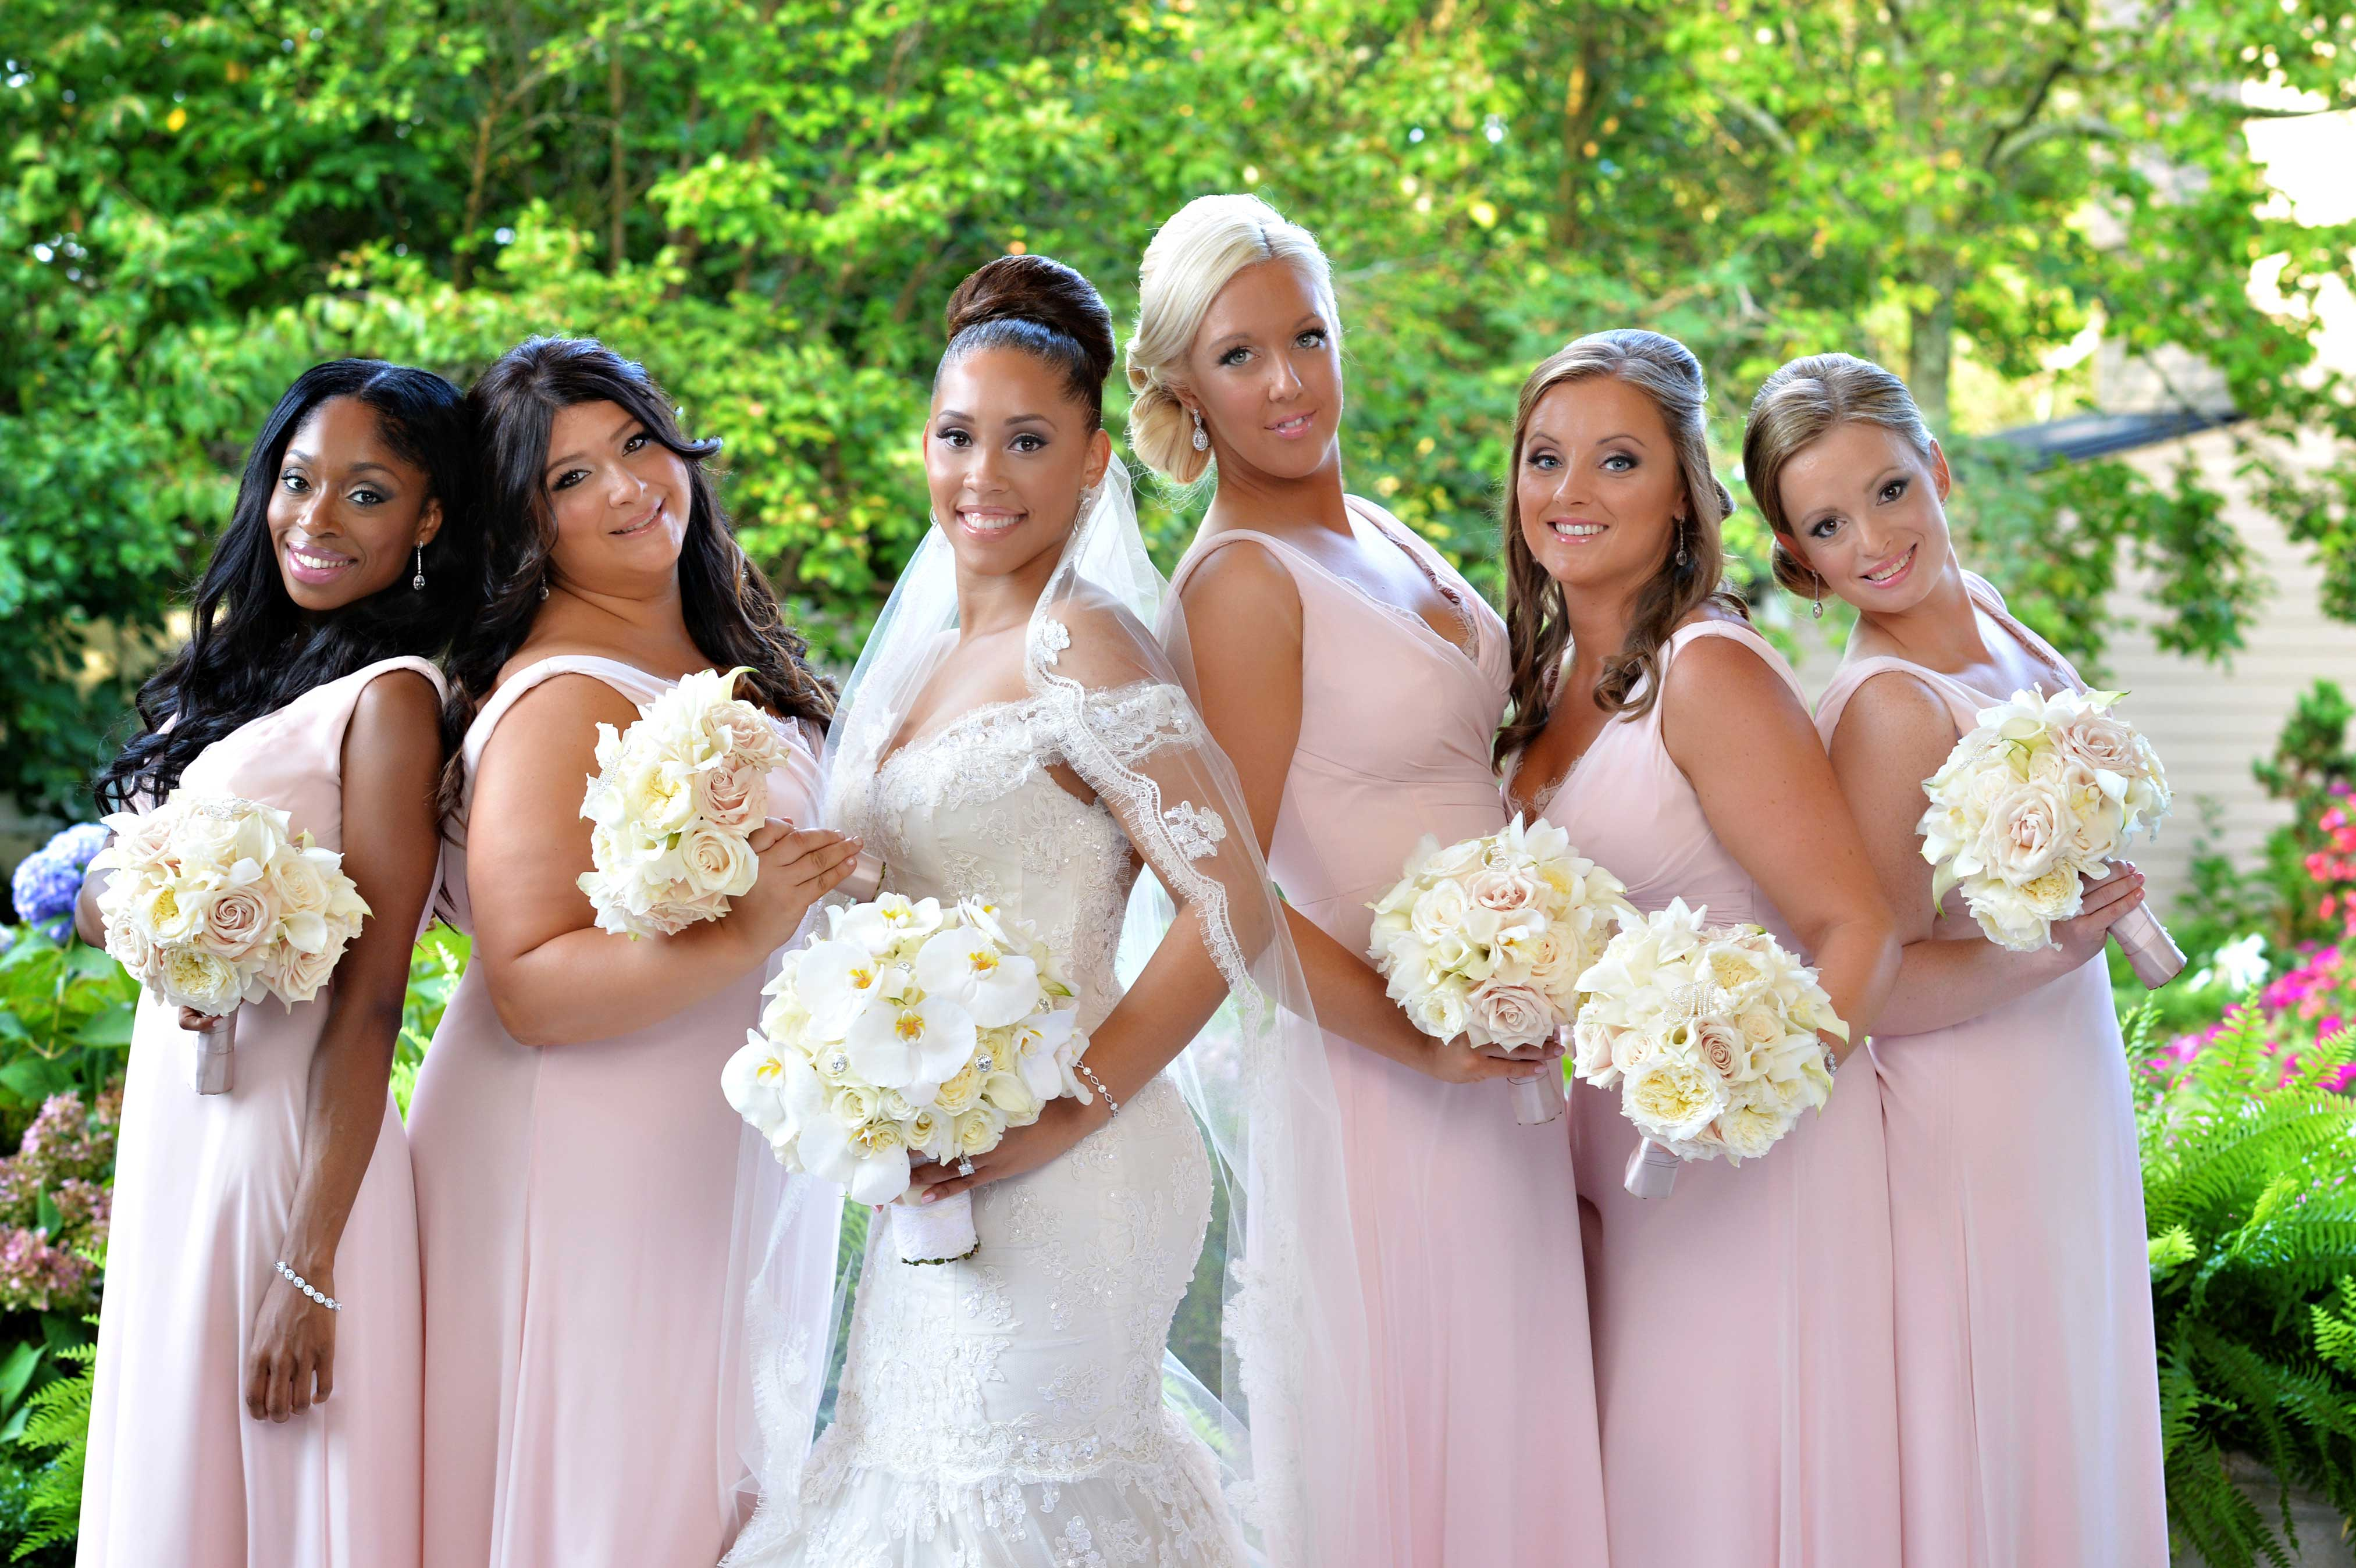 Bridesmaid dresses blush bridesmaid gowns from real weddings tracy morgan wife megan wollover with bridesmaids in blush dresses ombrellifo Images